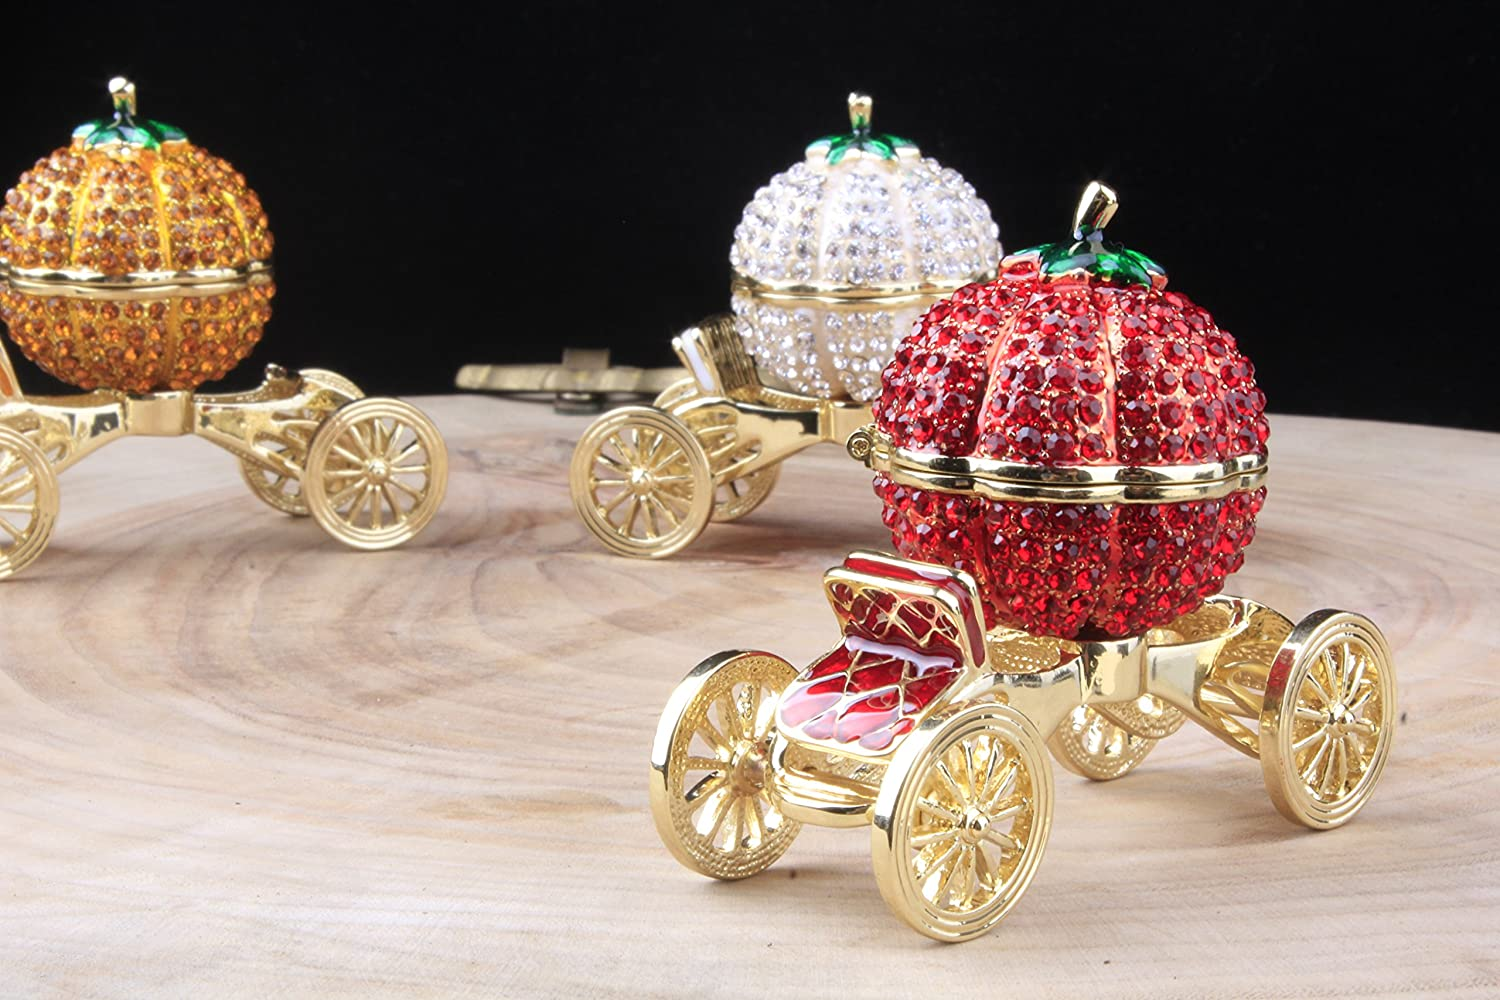 Amazon.com: Crystal Carriage Jewelry Box Home Decoration ...